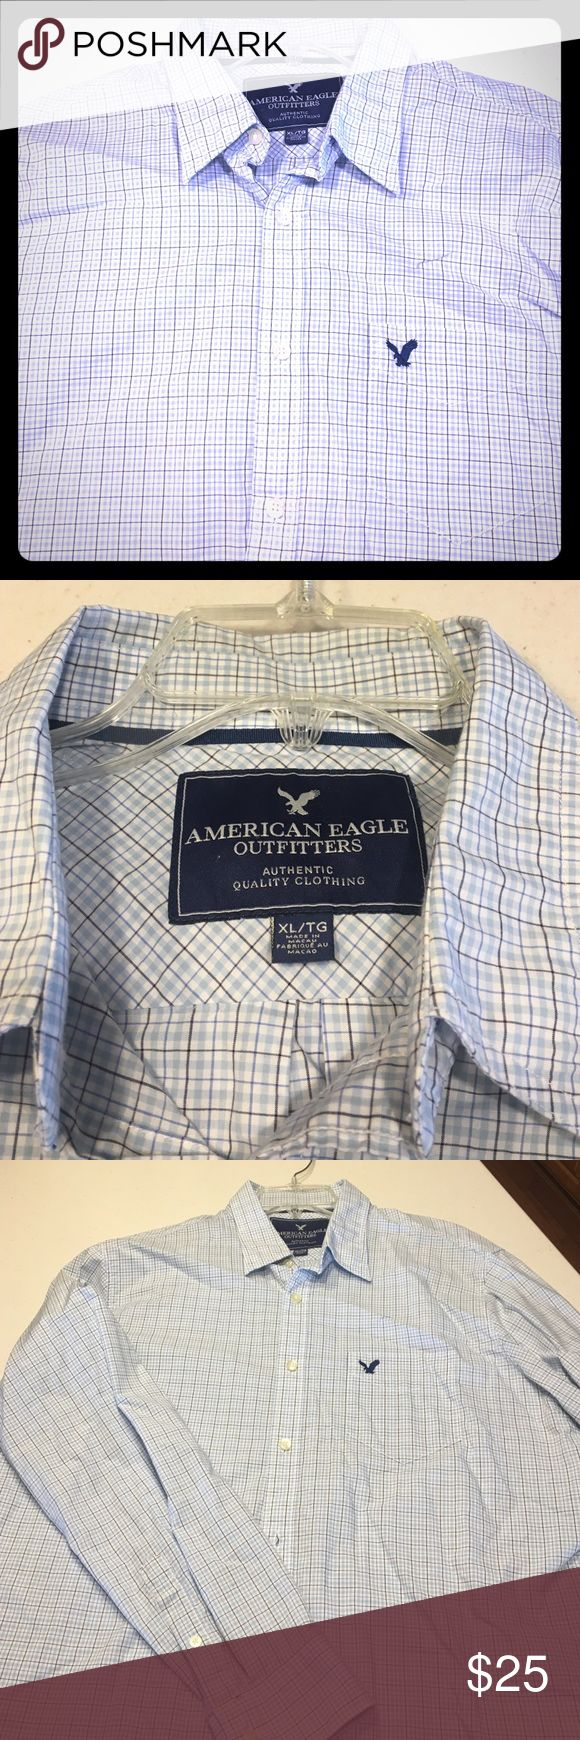 Classic American Eagle button up- worn once! Very classy dress shirt/button up. Worn once for an hour. Like new! American Eagle Outfitters Shirts Casual Button Down Shirts